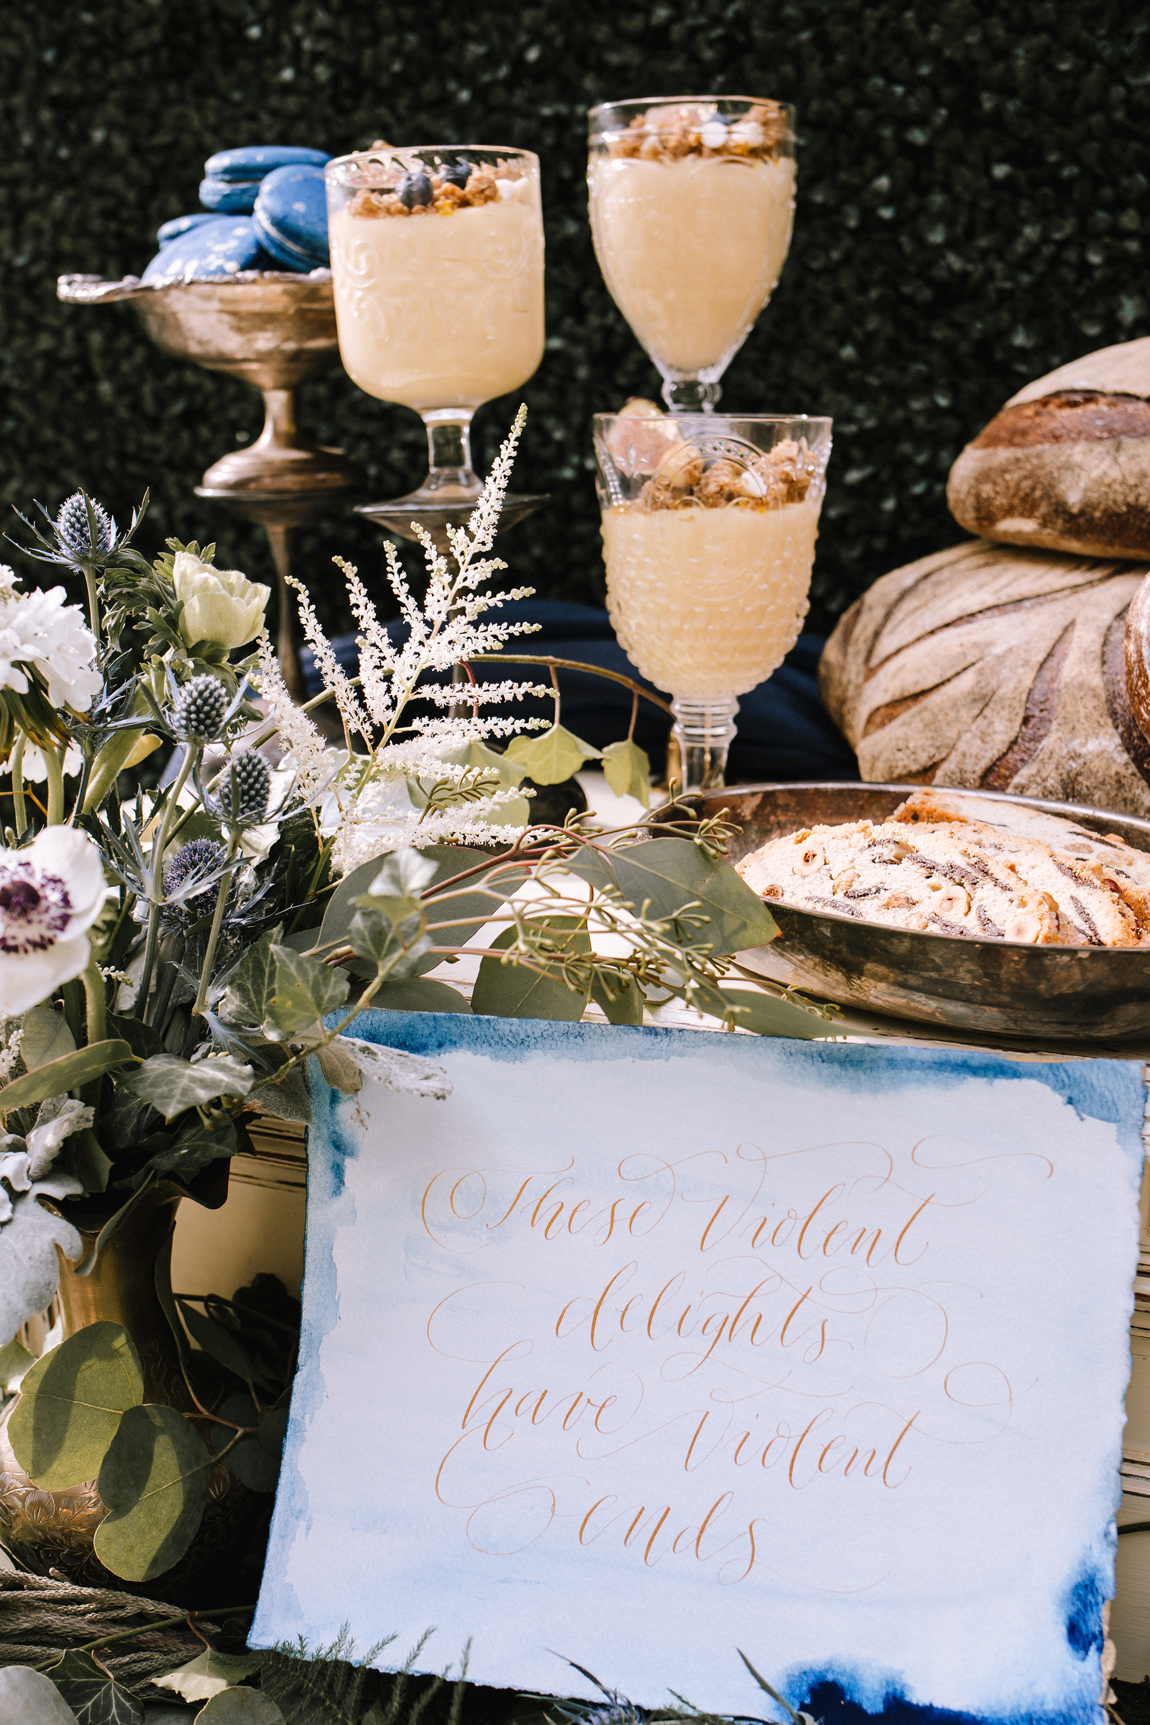 Romeo and Juliet inspired wedding decor